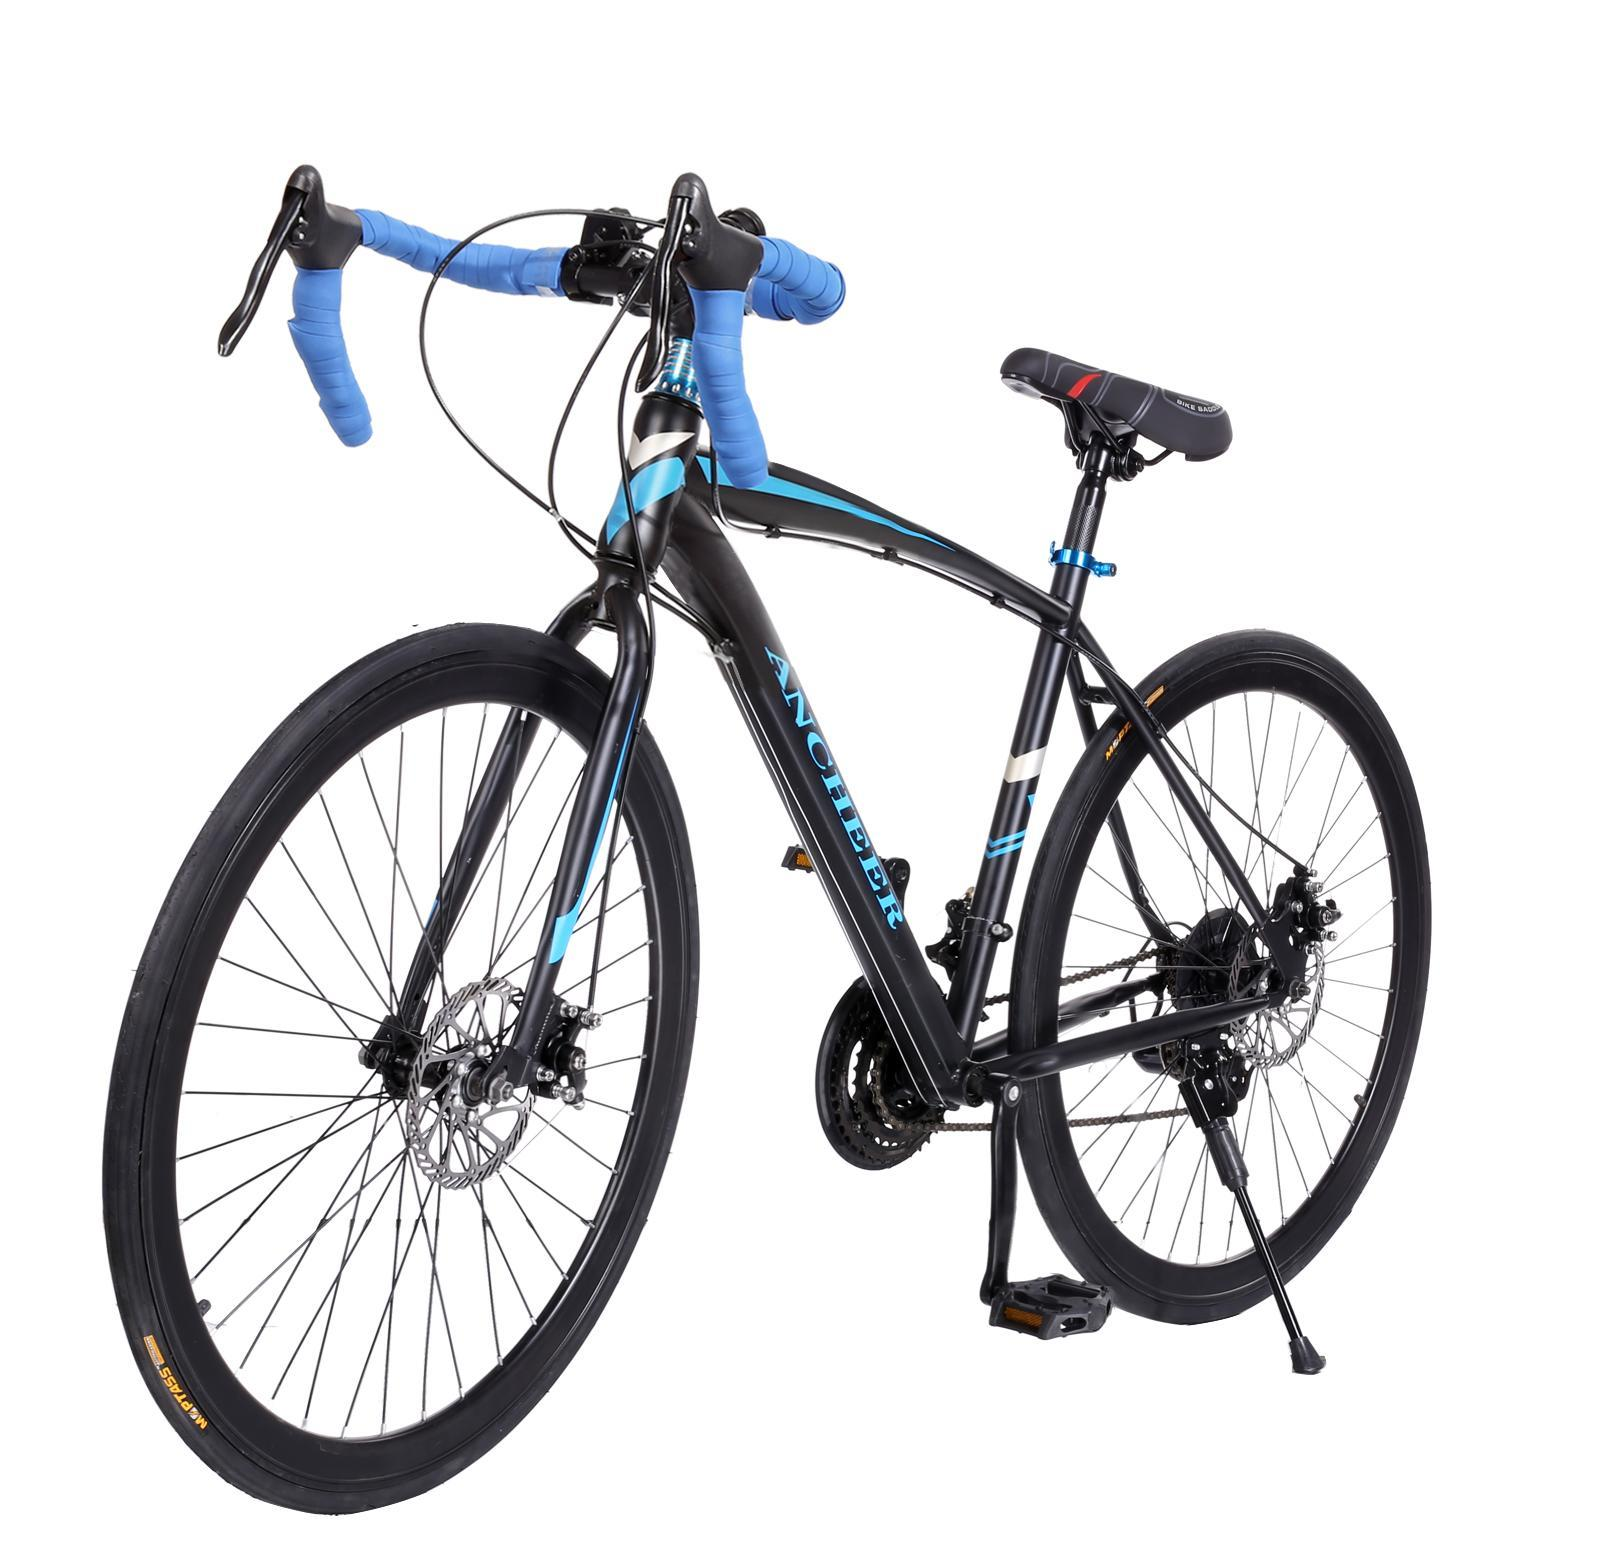 "21 Speed Road Bike 26"" Men Racing Commuter Bicycle Aluminum Alloy Frame 700c"